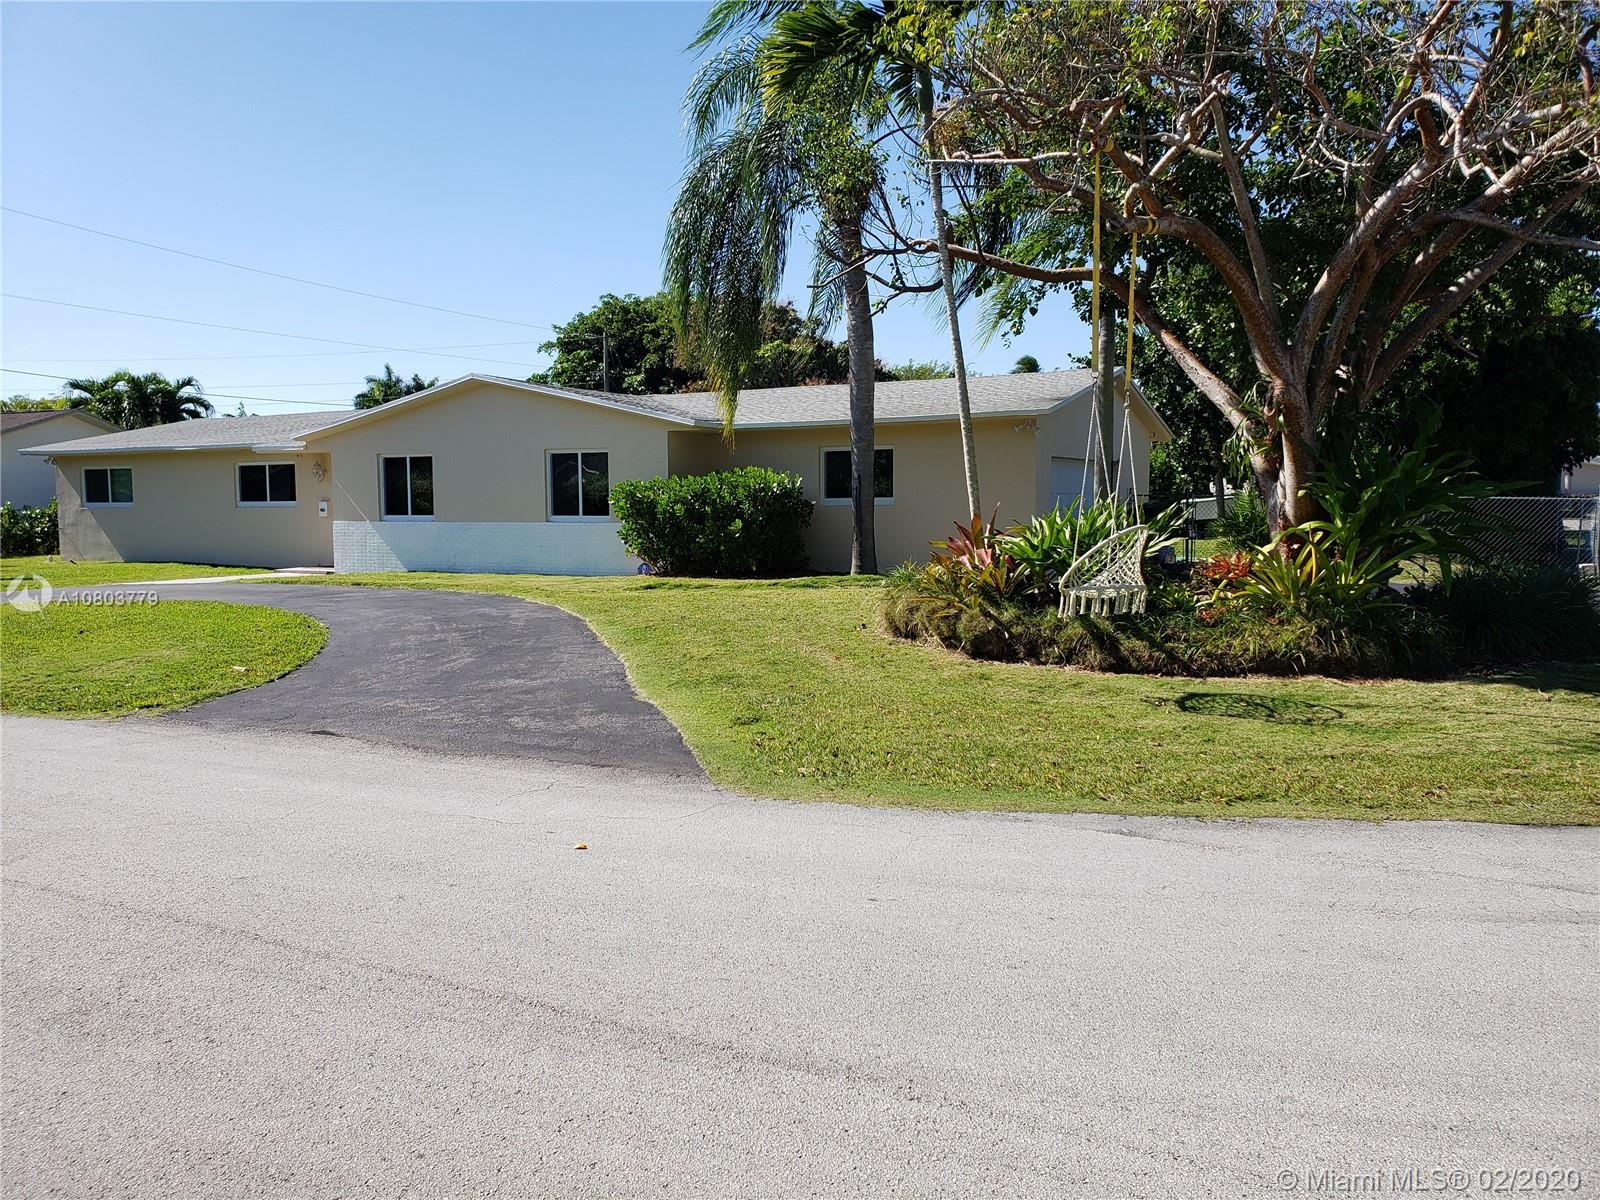 14100 SW 98th Ct, Miami, Florida 33176, 4 Bedrooms Bedrooms, ,2 BathroomsBathrooms,Residential,For Sale,14100 SW 98th Ct,A10803779